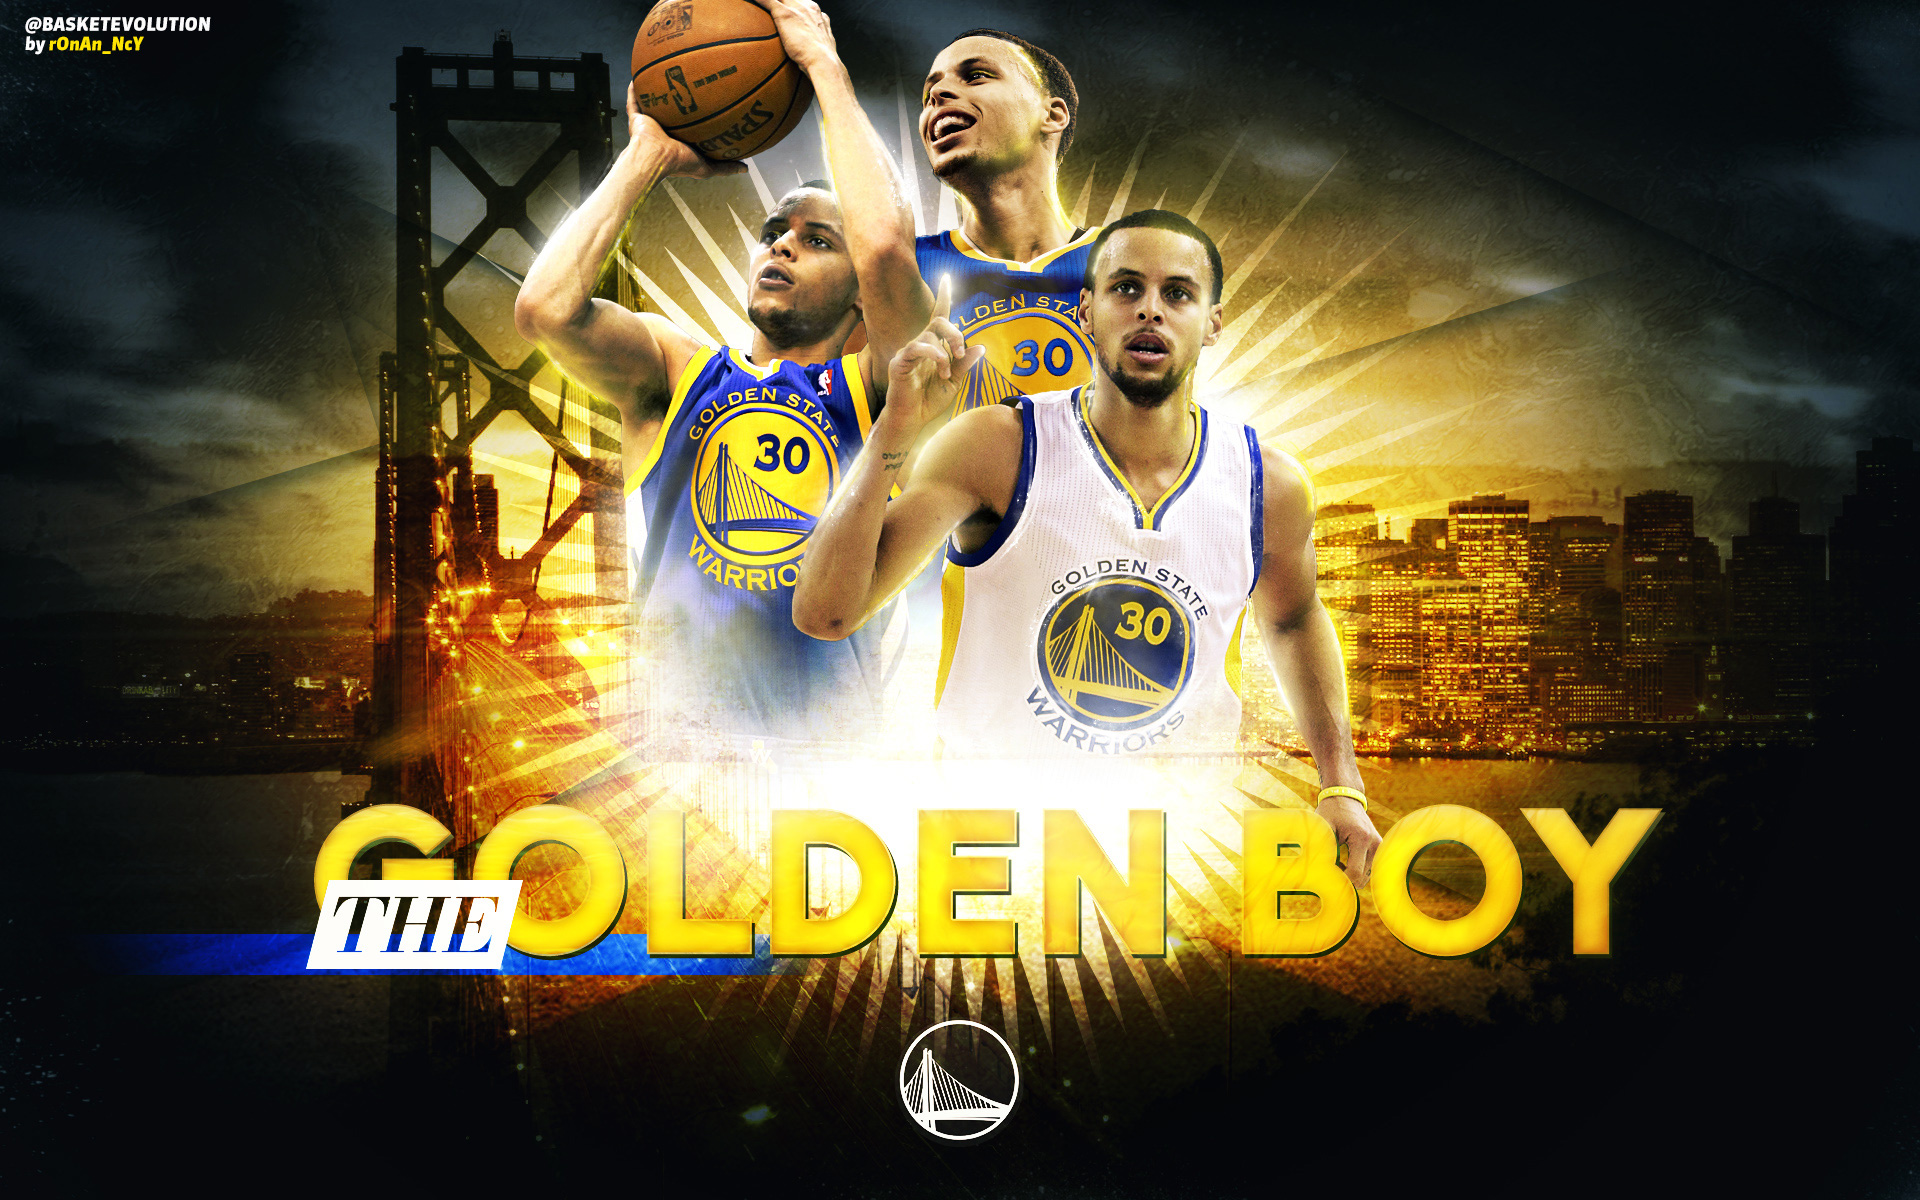 Stephen Curry The Golden Boy 2015 Wallpaper Basketball 1920x1200